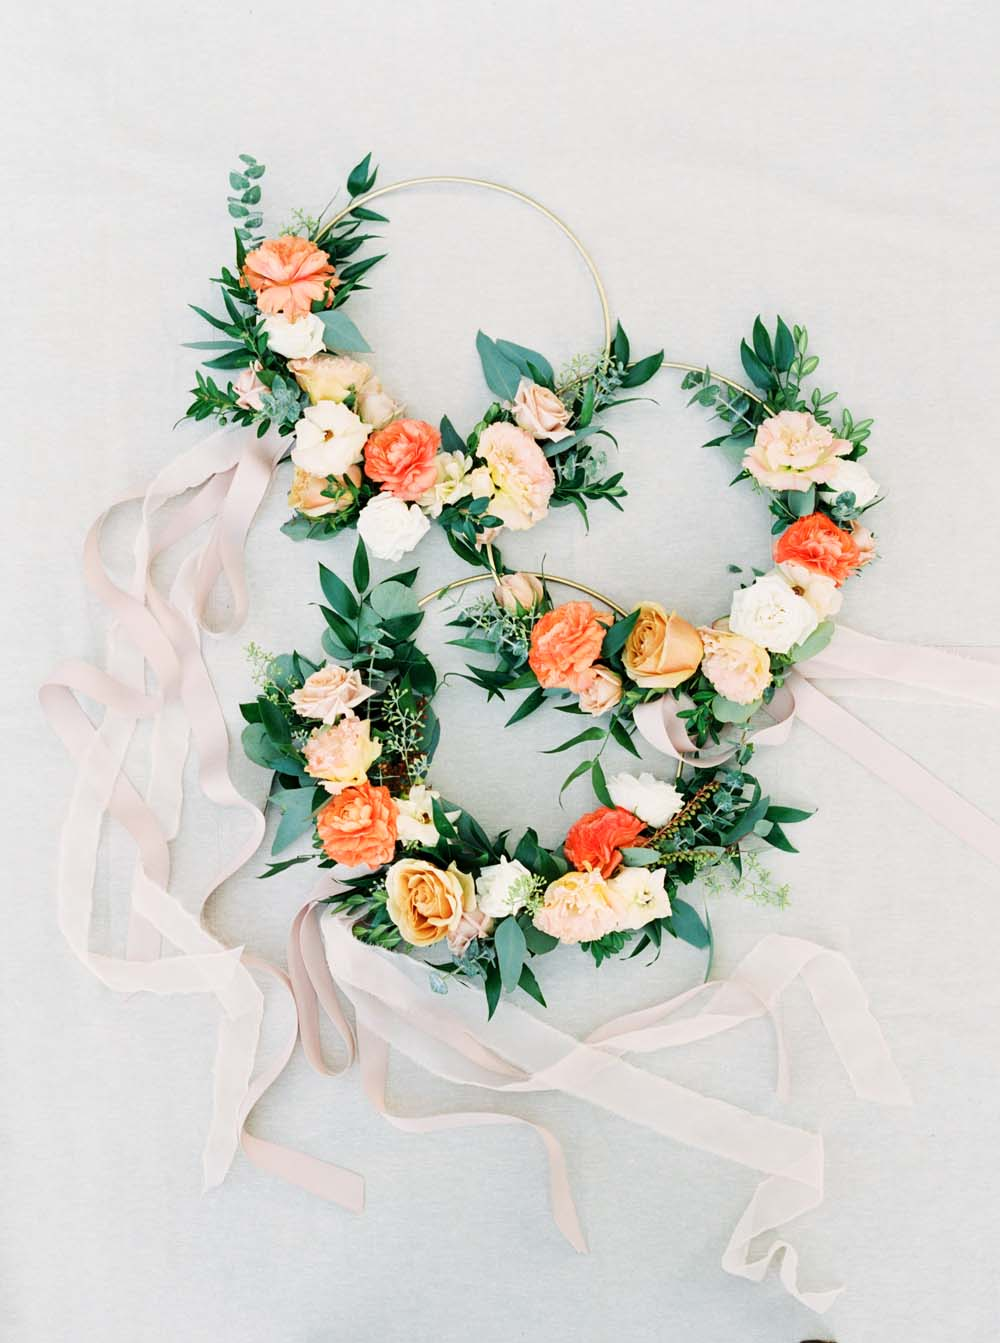 A Floral Peach Celebration in St. David's, Ontario - Floral rings